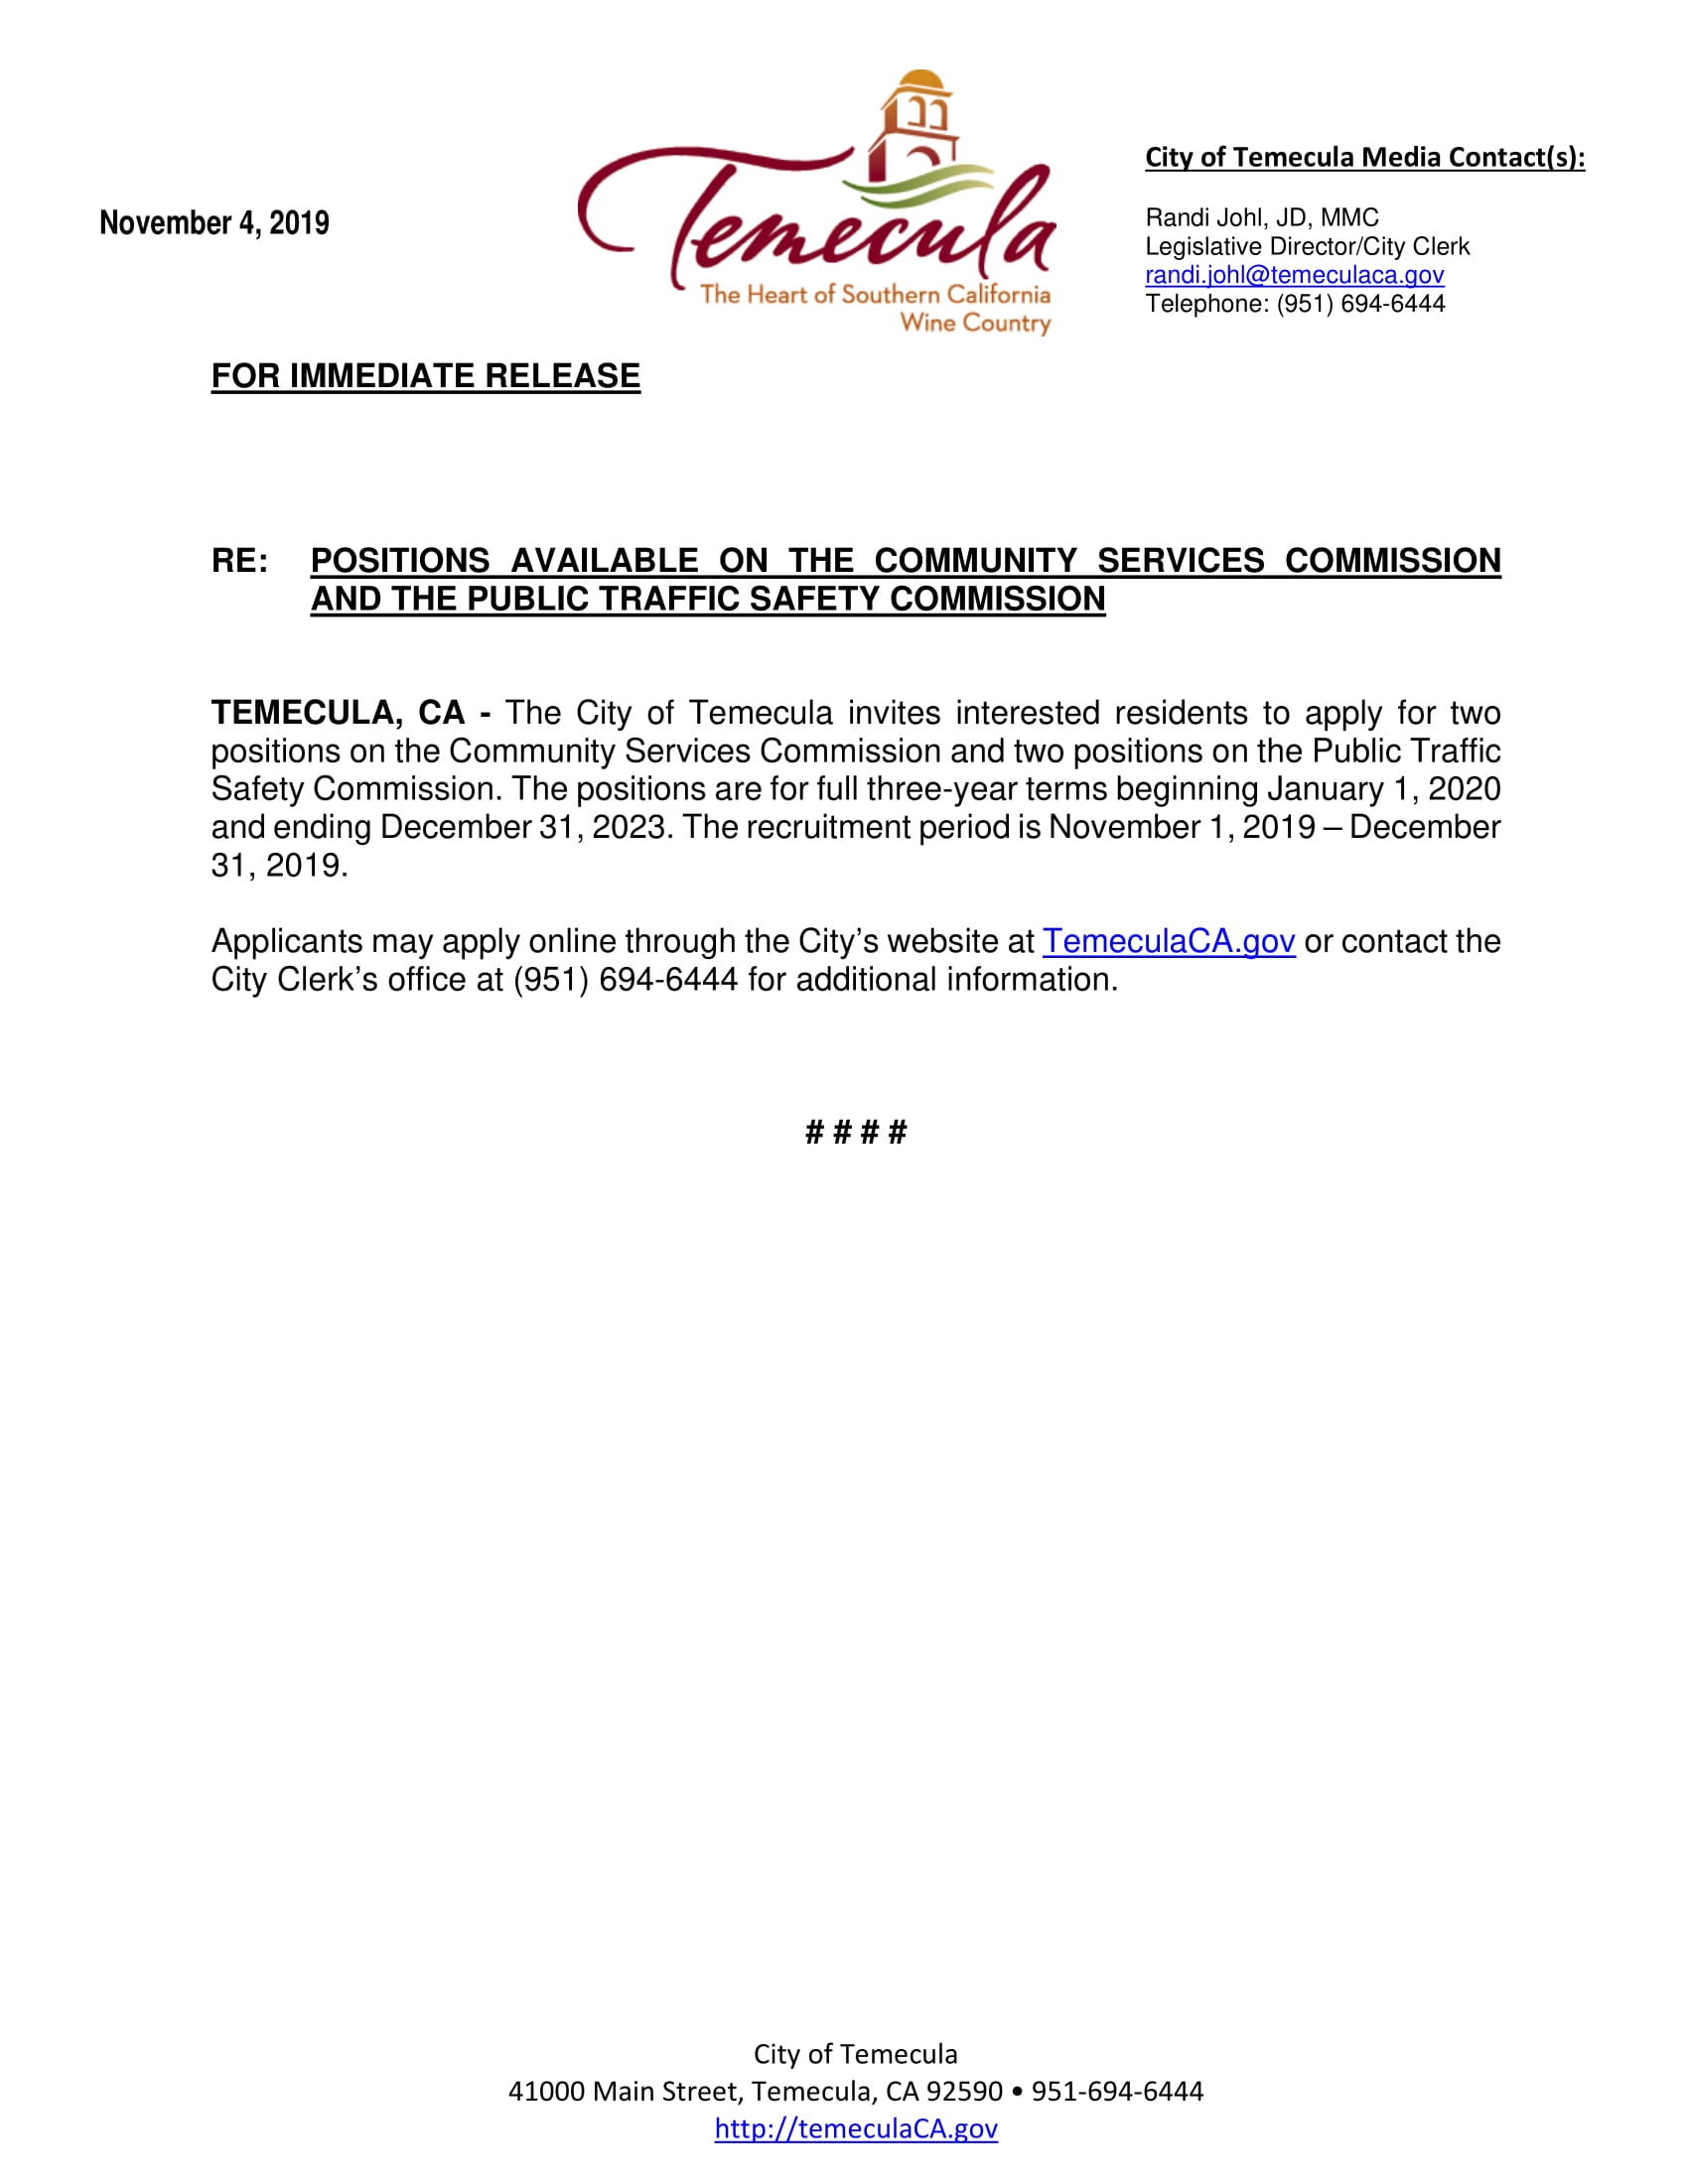 Press Release - Commission Positions Available-1